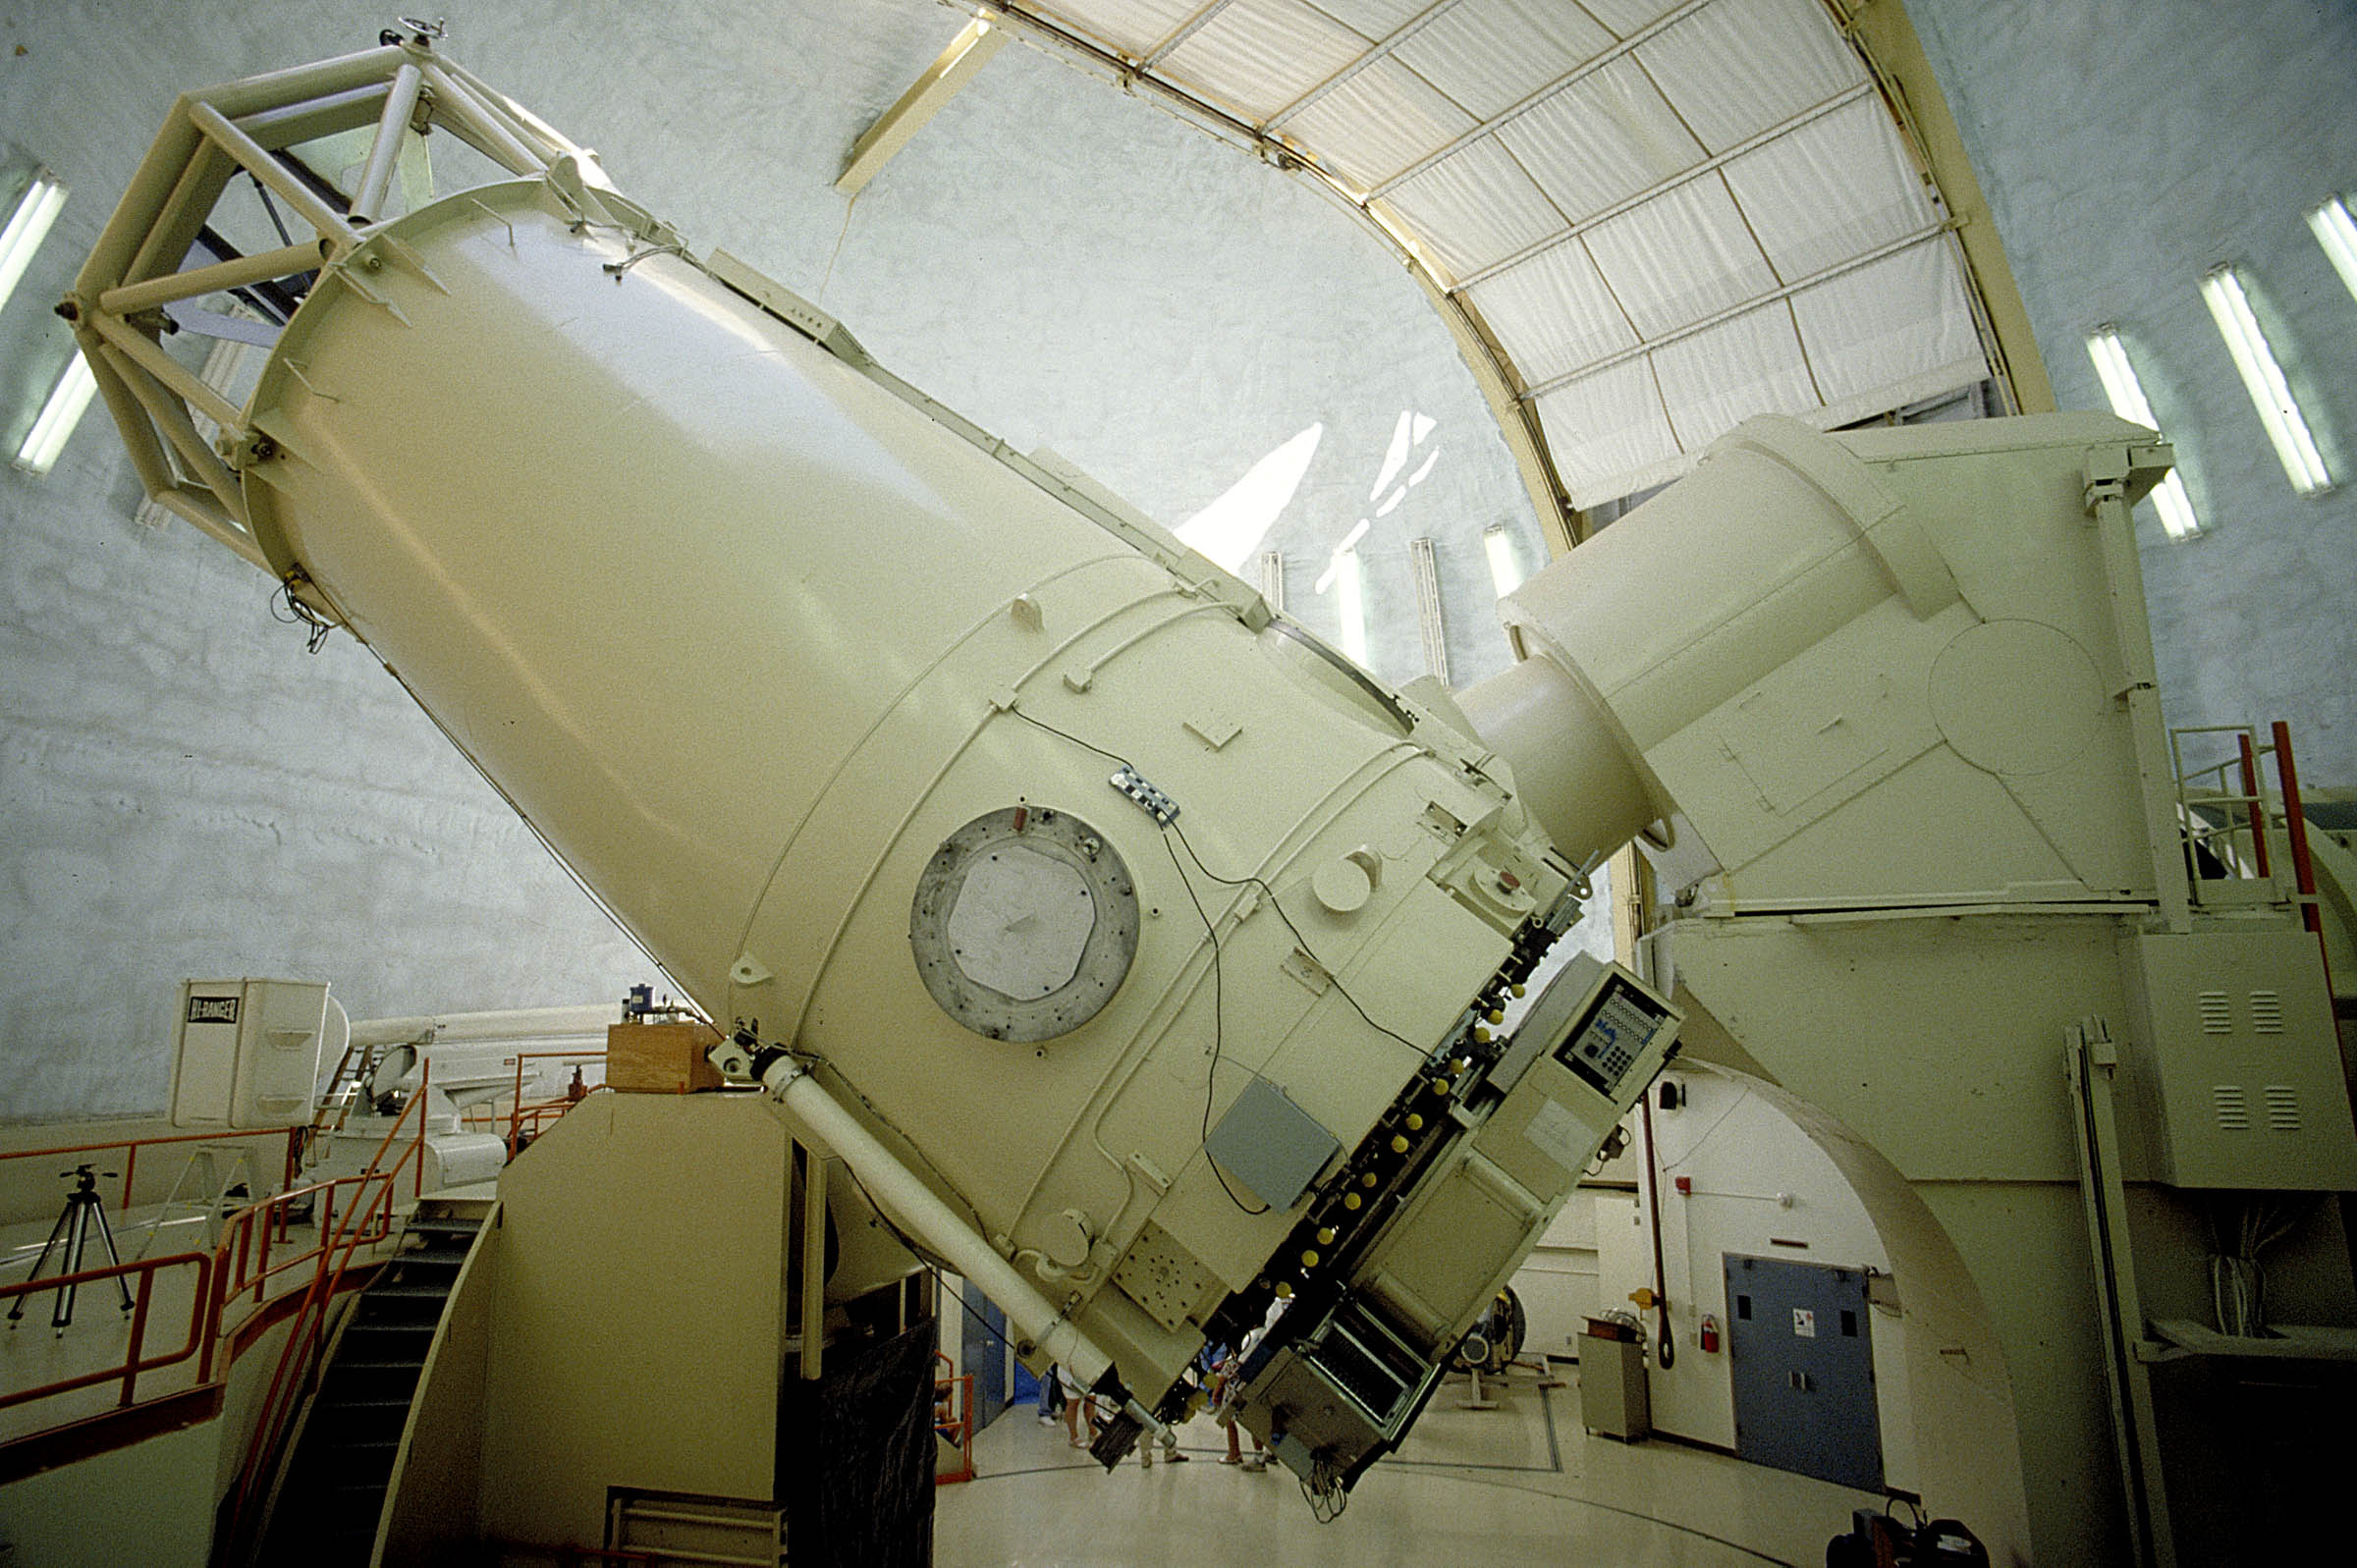 The 2.7-meter (107-inch) Harlan J. Smith Telescope at the University of Texas Mc